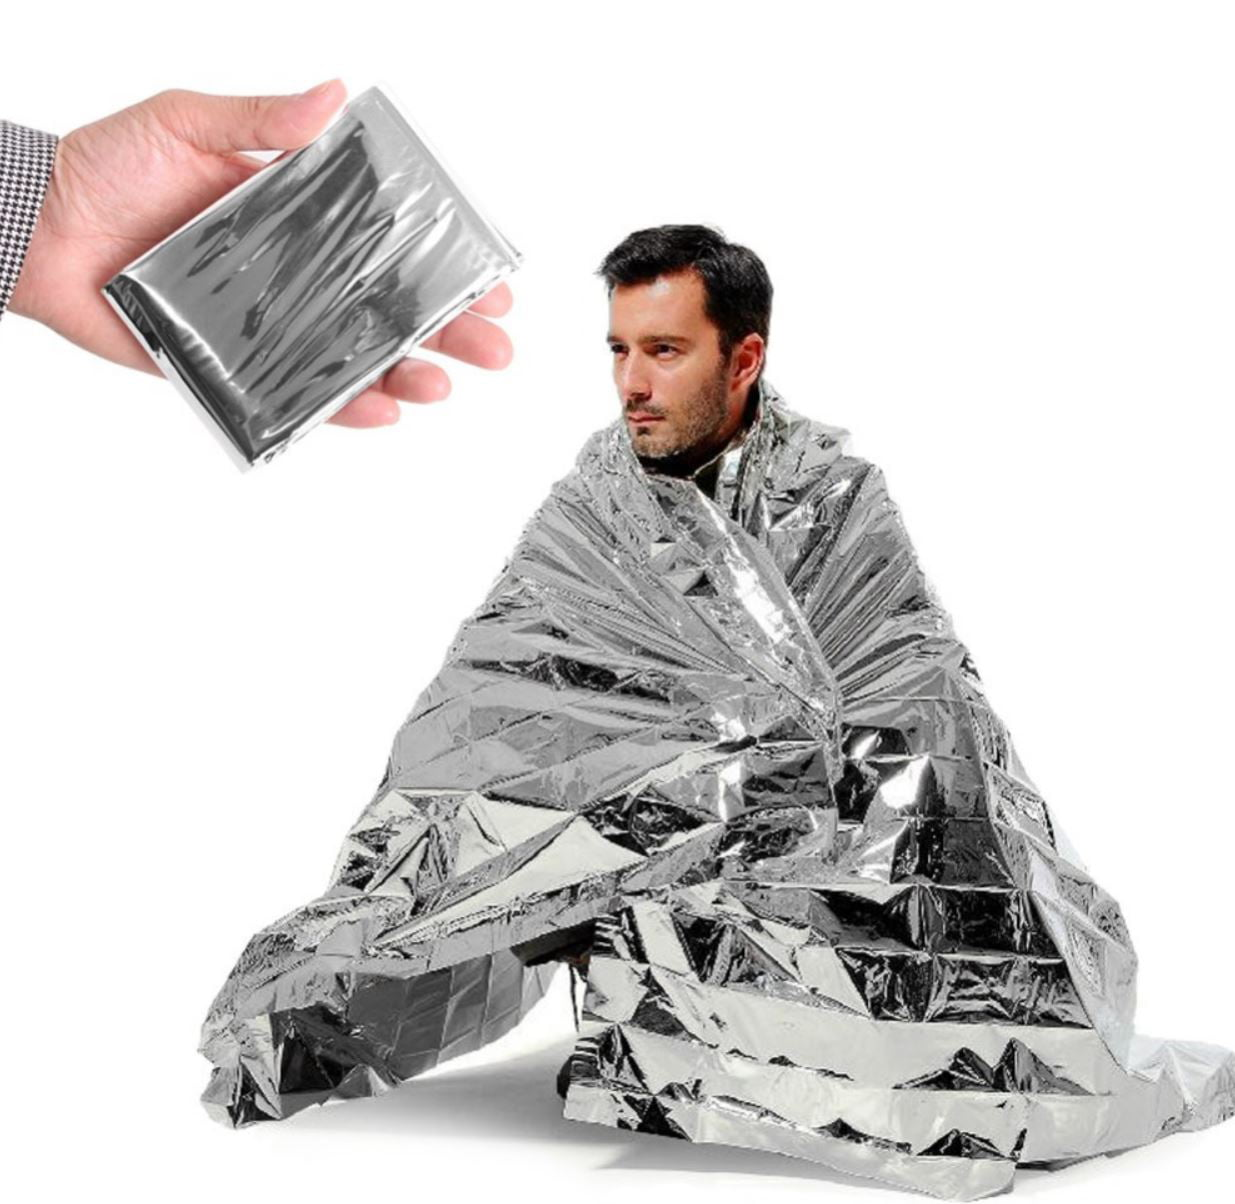 Emergency Blankets Solar Rescue Space Thermal Mylar Heat Insulating Survival